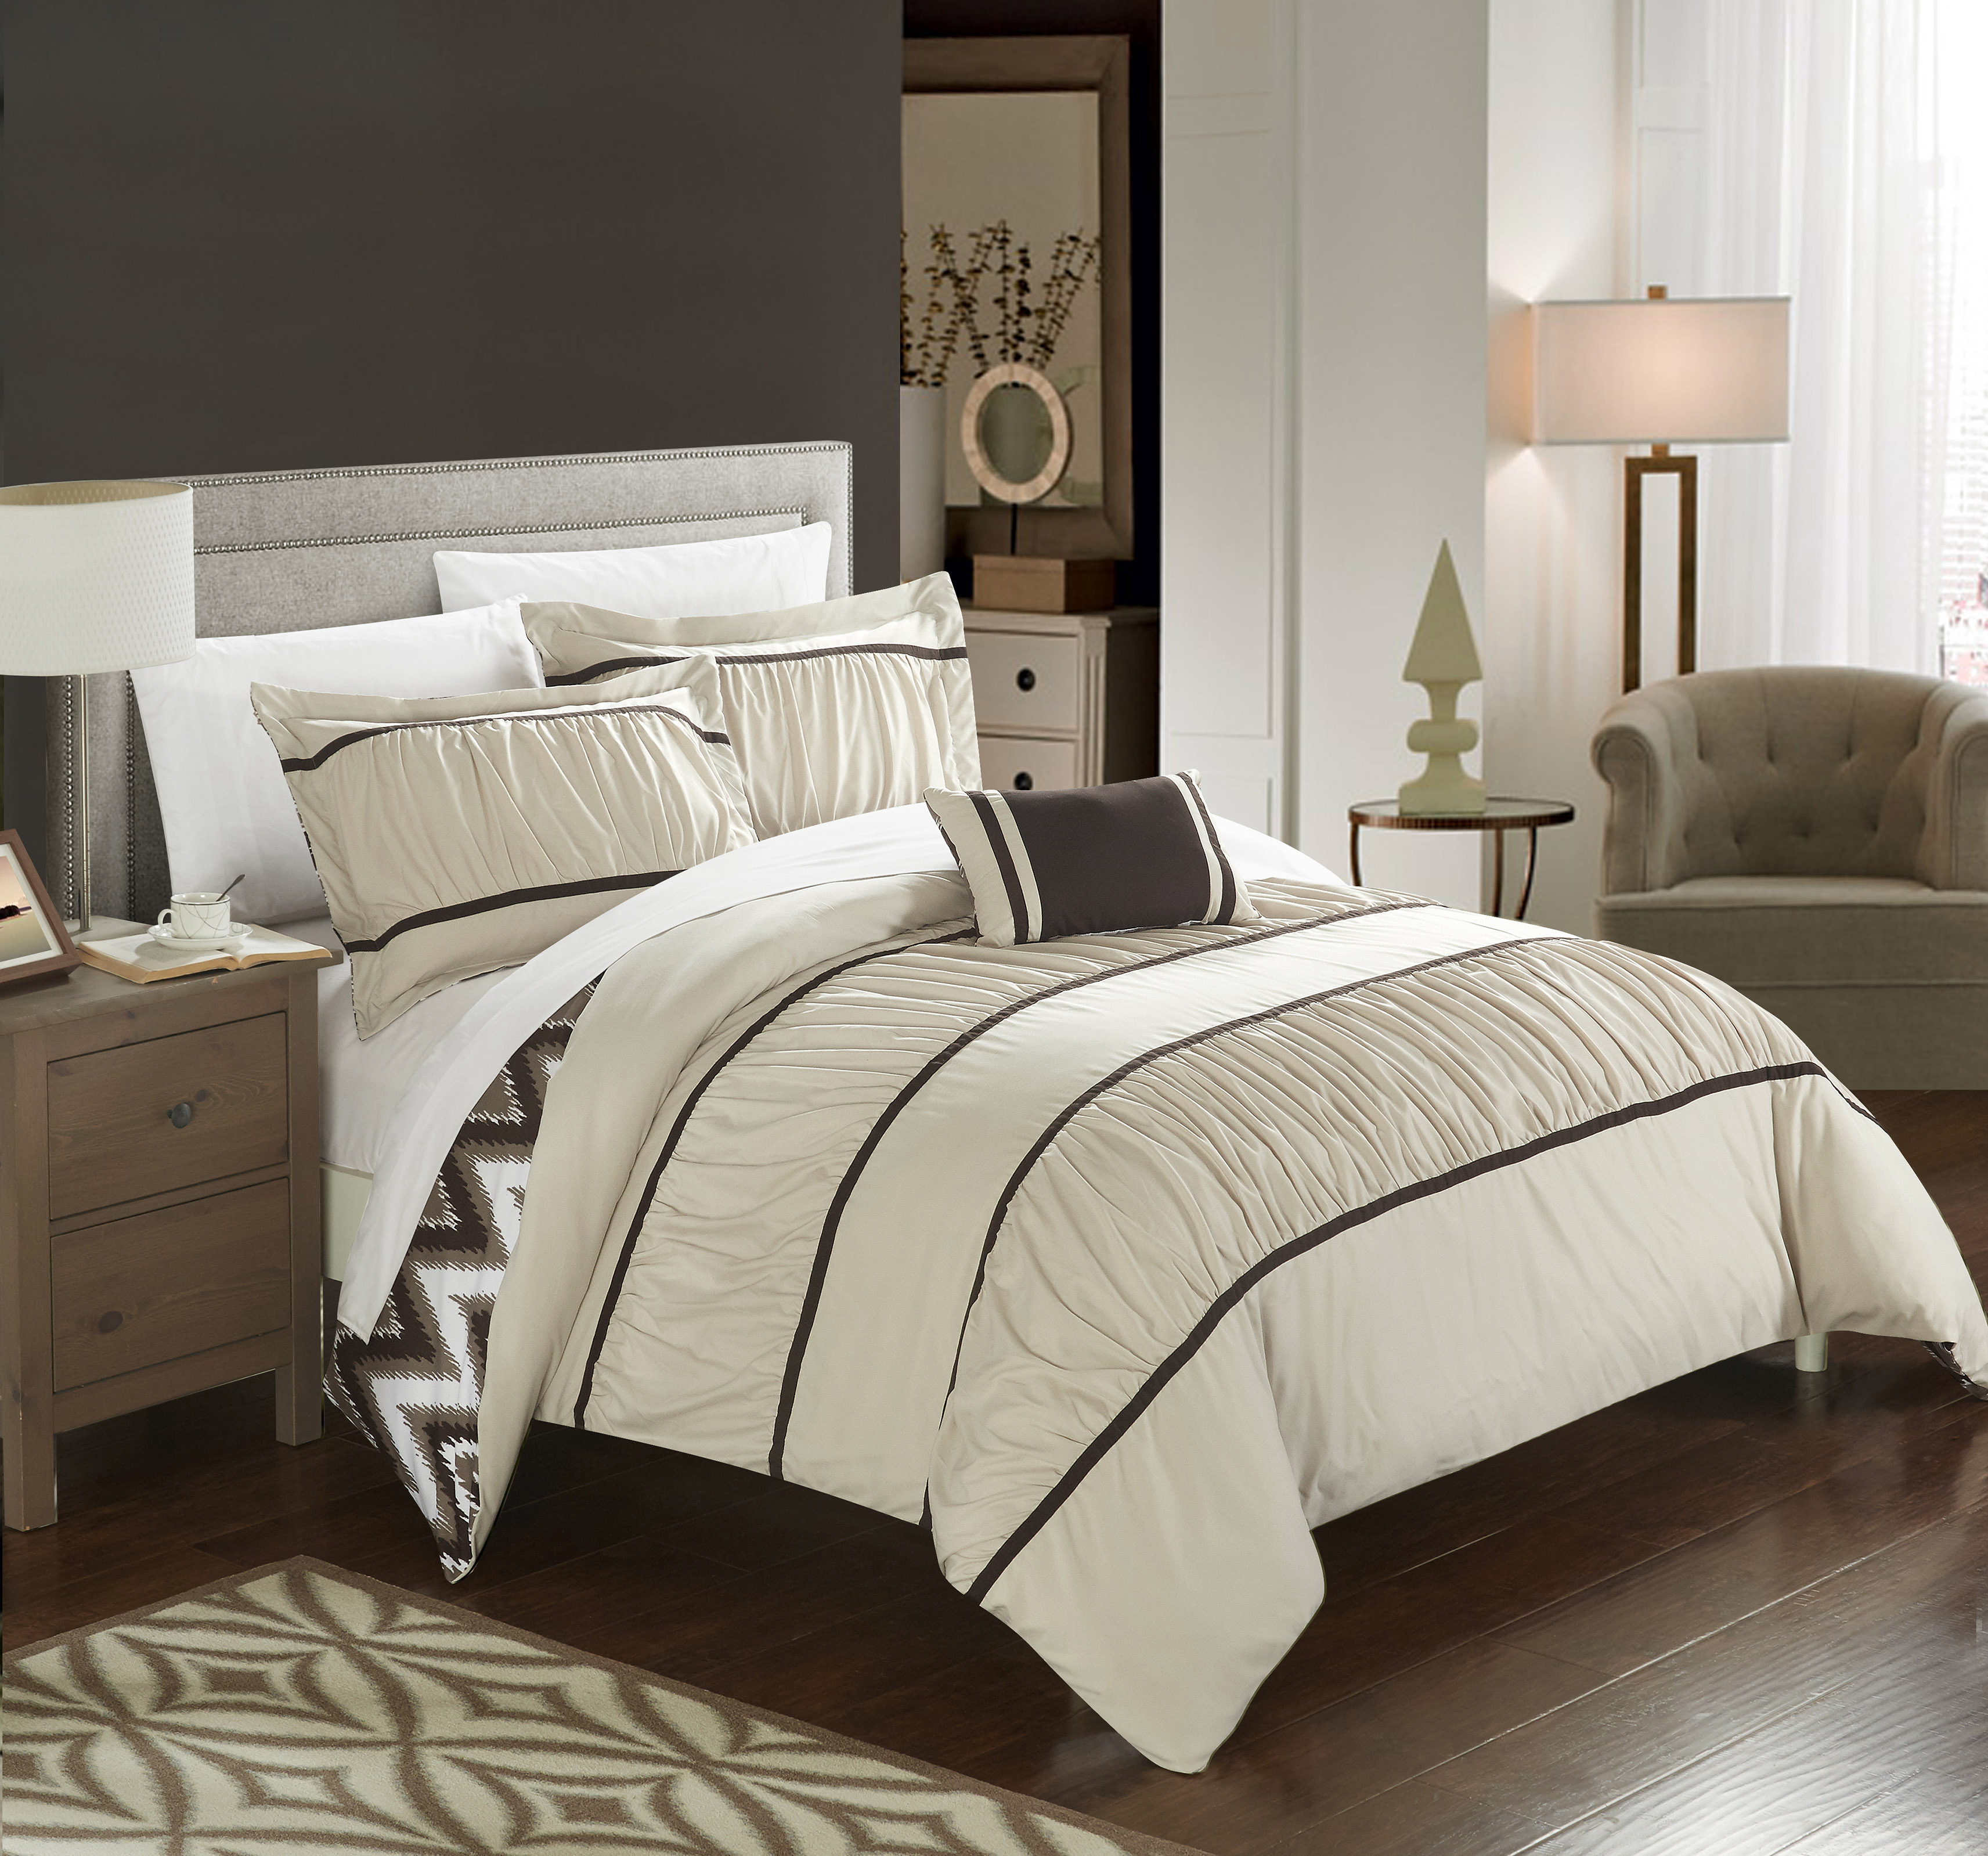 Chic Home 3-Piece Brooks Pleated & Ruffled with Chevron REVERSIBLE Backing Twin Comforter Set Beige Shams and Decorative Pillows included